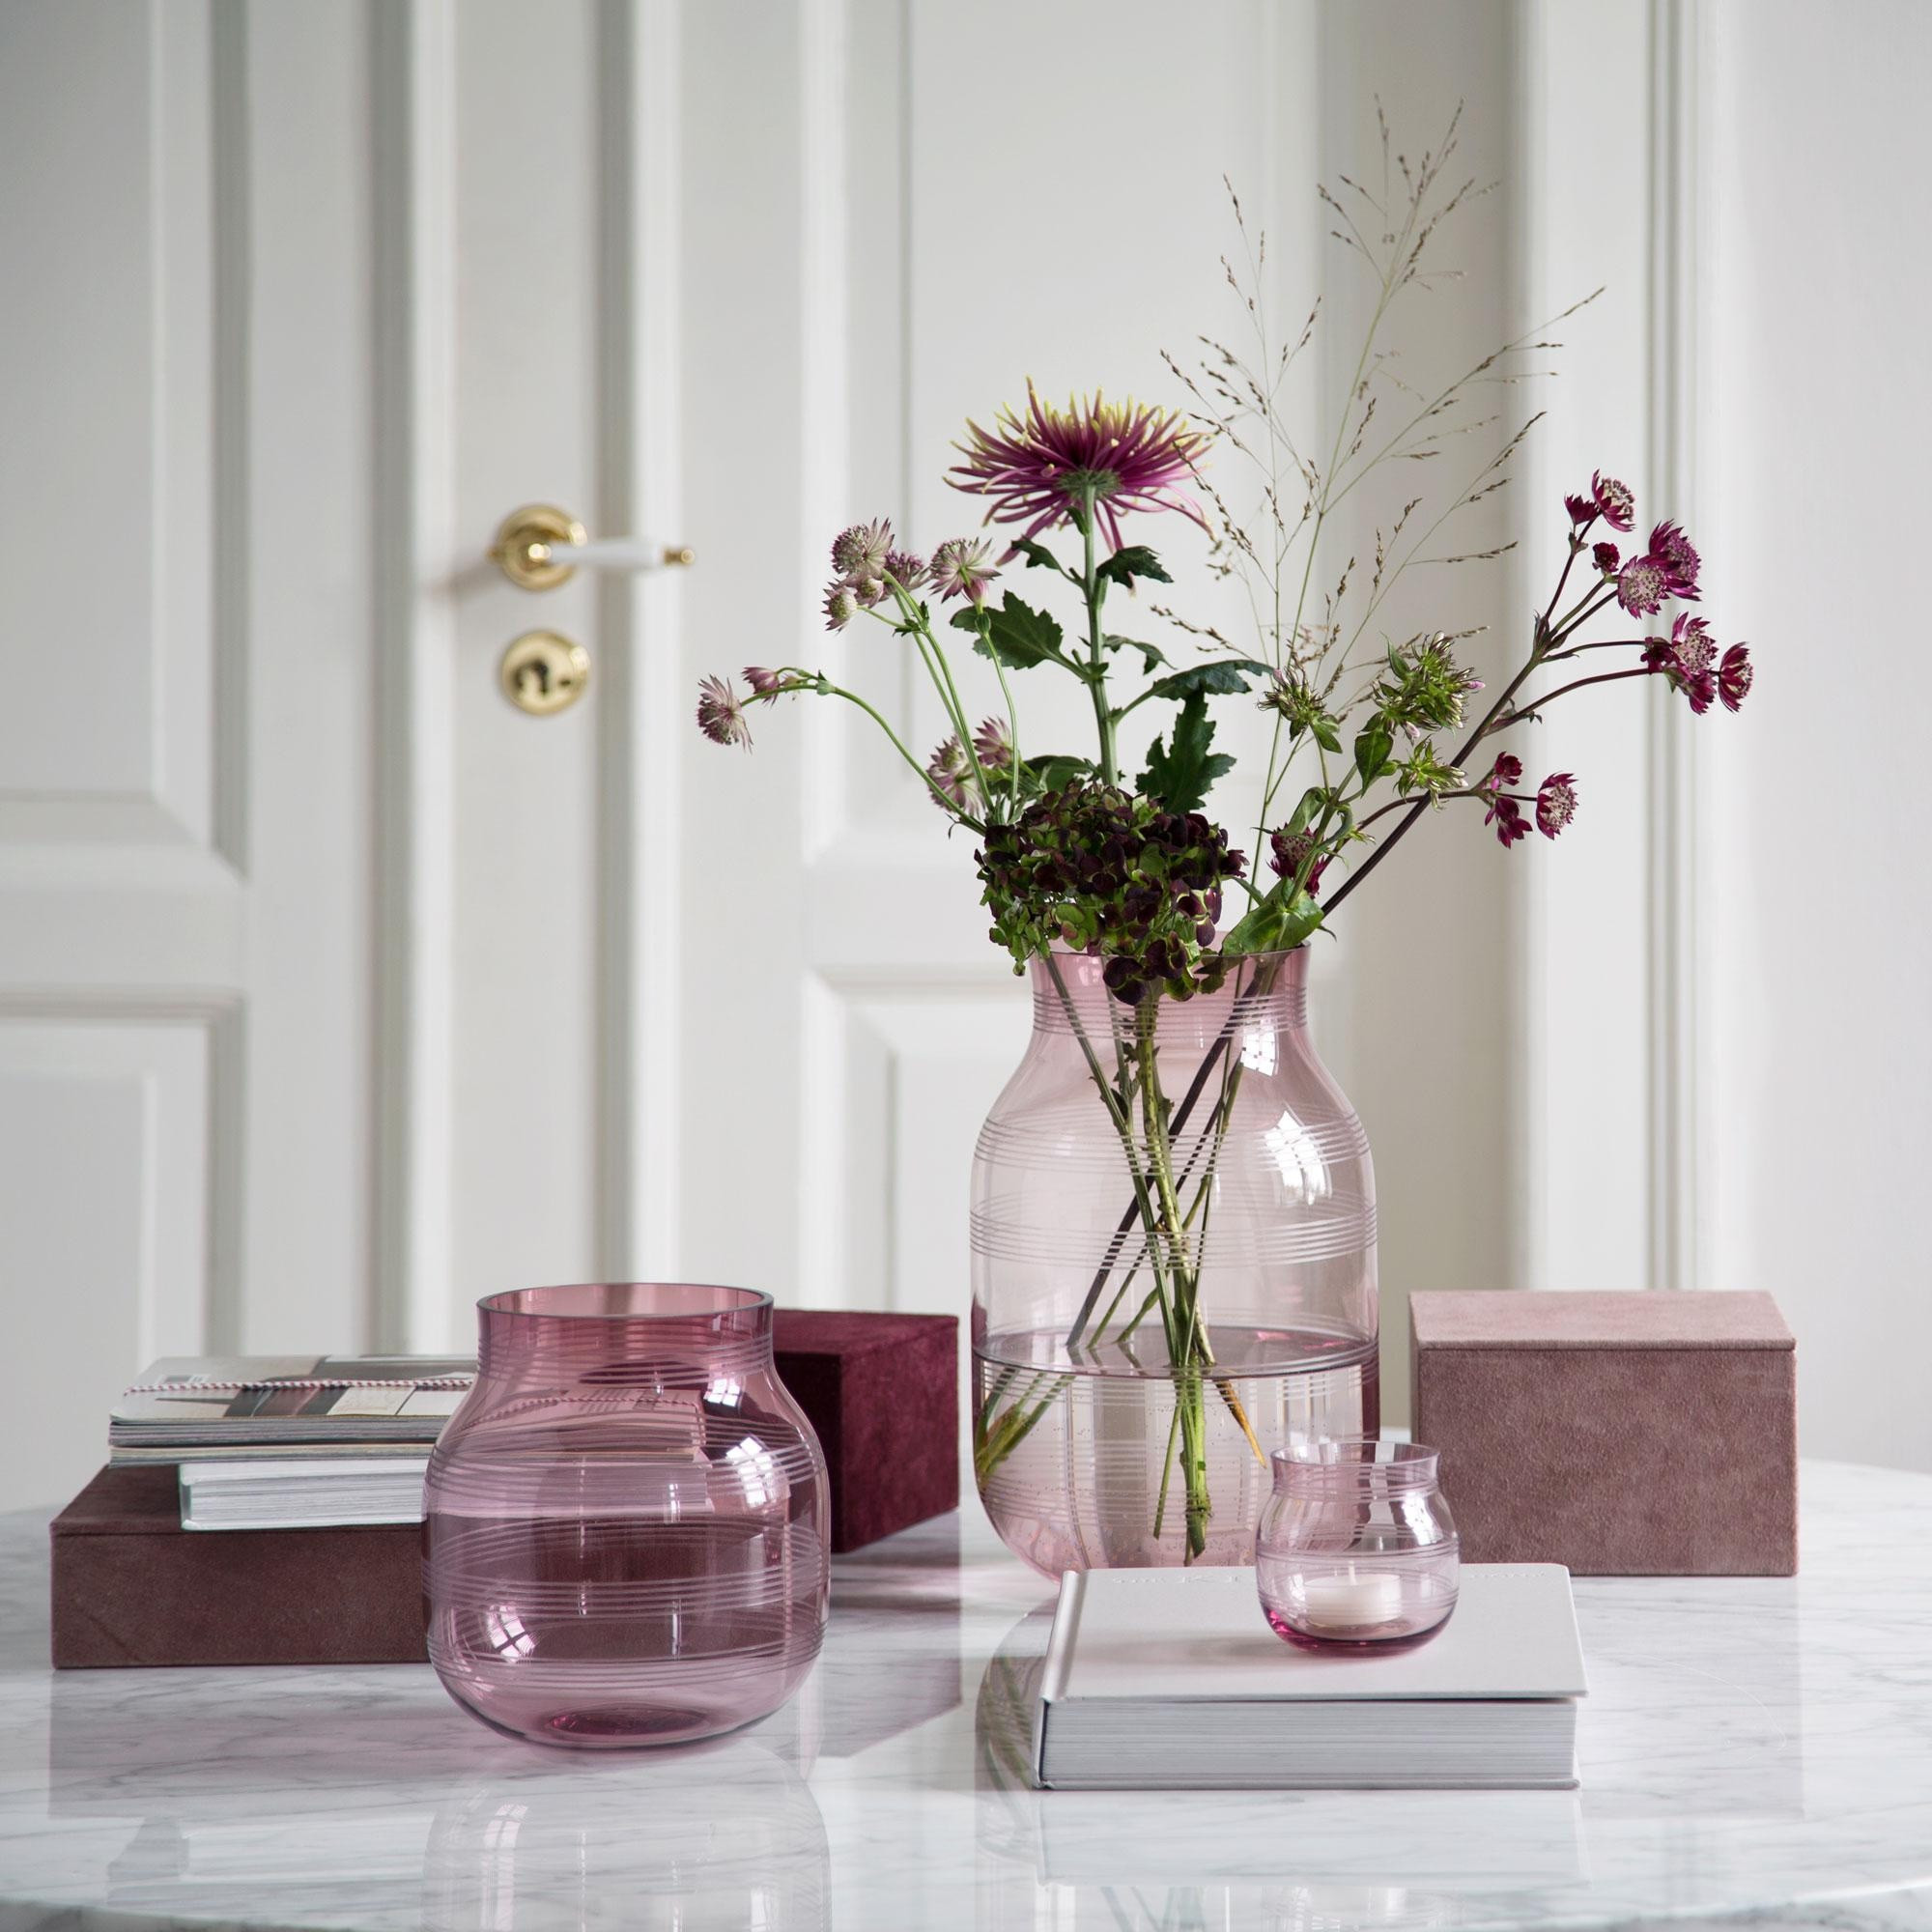 plum vases and bowls of ka¤hler omaggio glass vase h 17cm ambientedirect regarding exclusive sale only for styleclub members